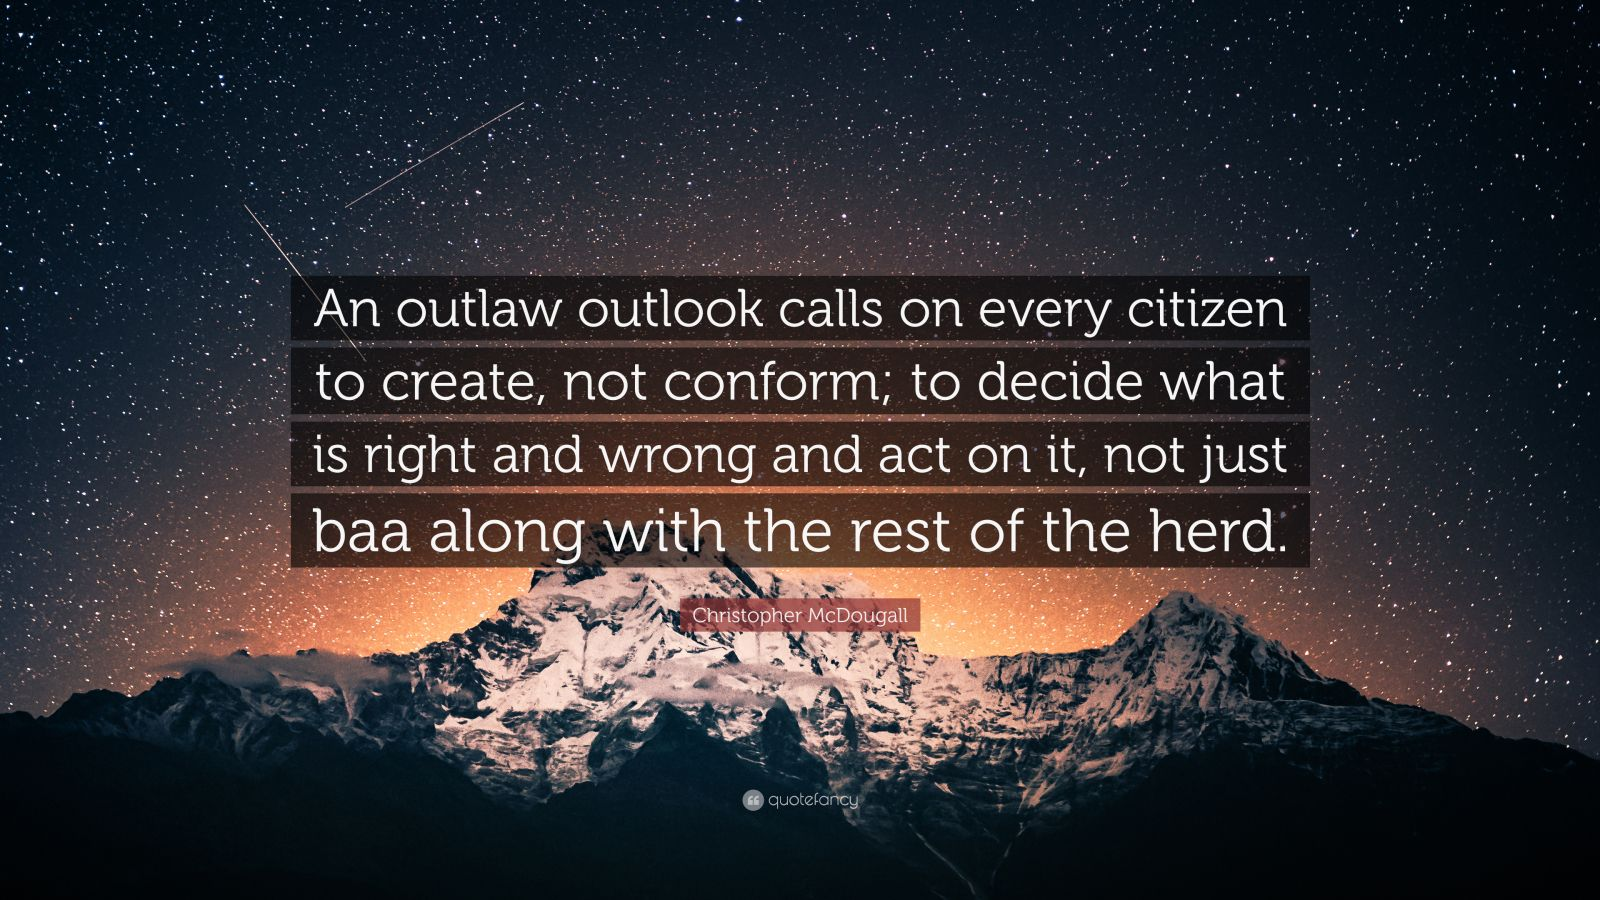 """Christopher McDougall Quote: """"An outlaw outlook calls on every citizen to create, not conform; to decide what is right and wrong and act on it, not just baa along with the rest of the herd."""""""